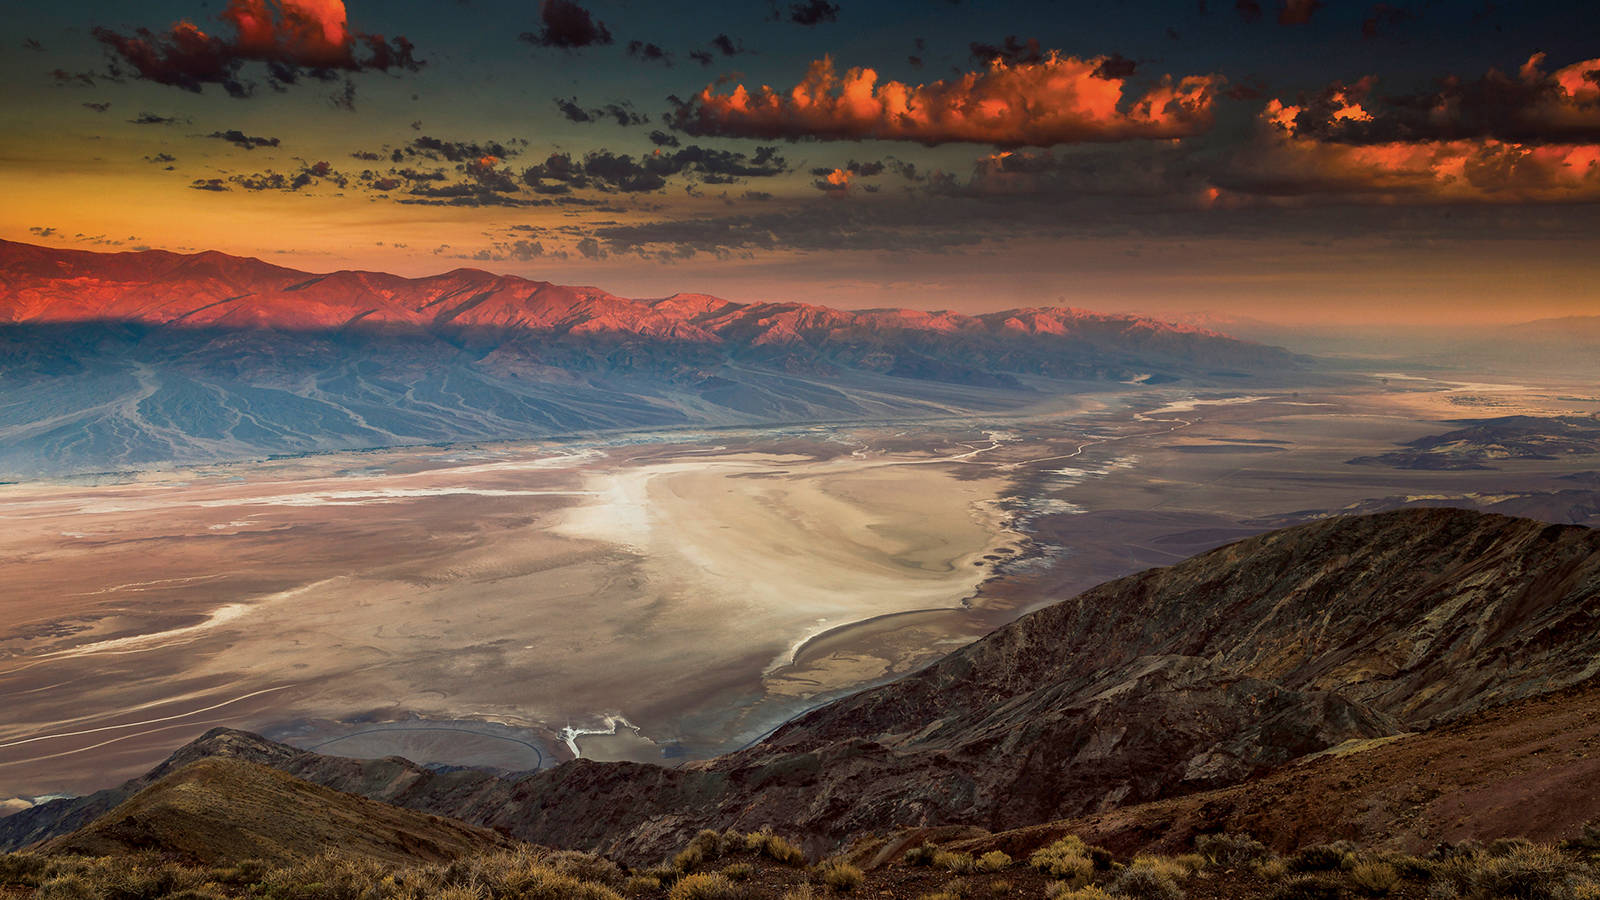 Some Like It Very Hot National Parks Conservation Association Snake Skeleton Diagram Beautiful Scenery Photography The Sun Rises Over Badwater Salt Pan And Panamint Range In Death Valley Fran Gallogly Tandemstock